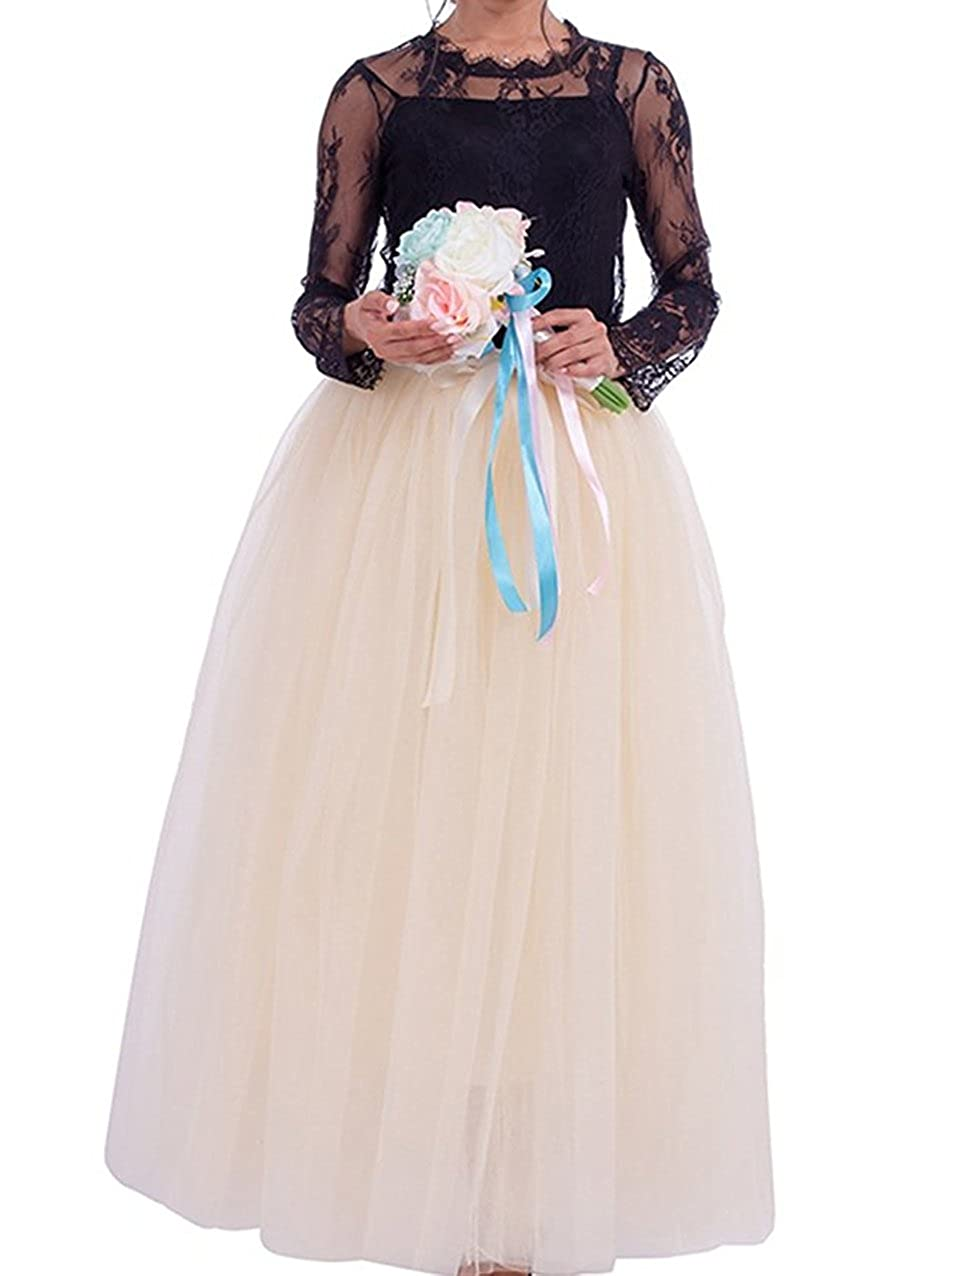 ca25f44c6 ... Women Floor Length Long Pleated Tutu Skirt For Ball Gown Wedding Party  Prom Dress. Wholesale Price:35.99. Handmade with high quality tulle fabric  ( 6 ...